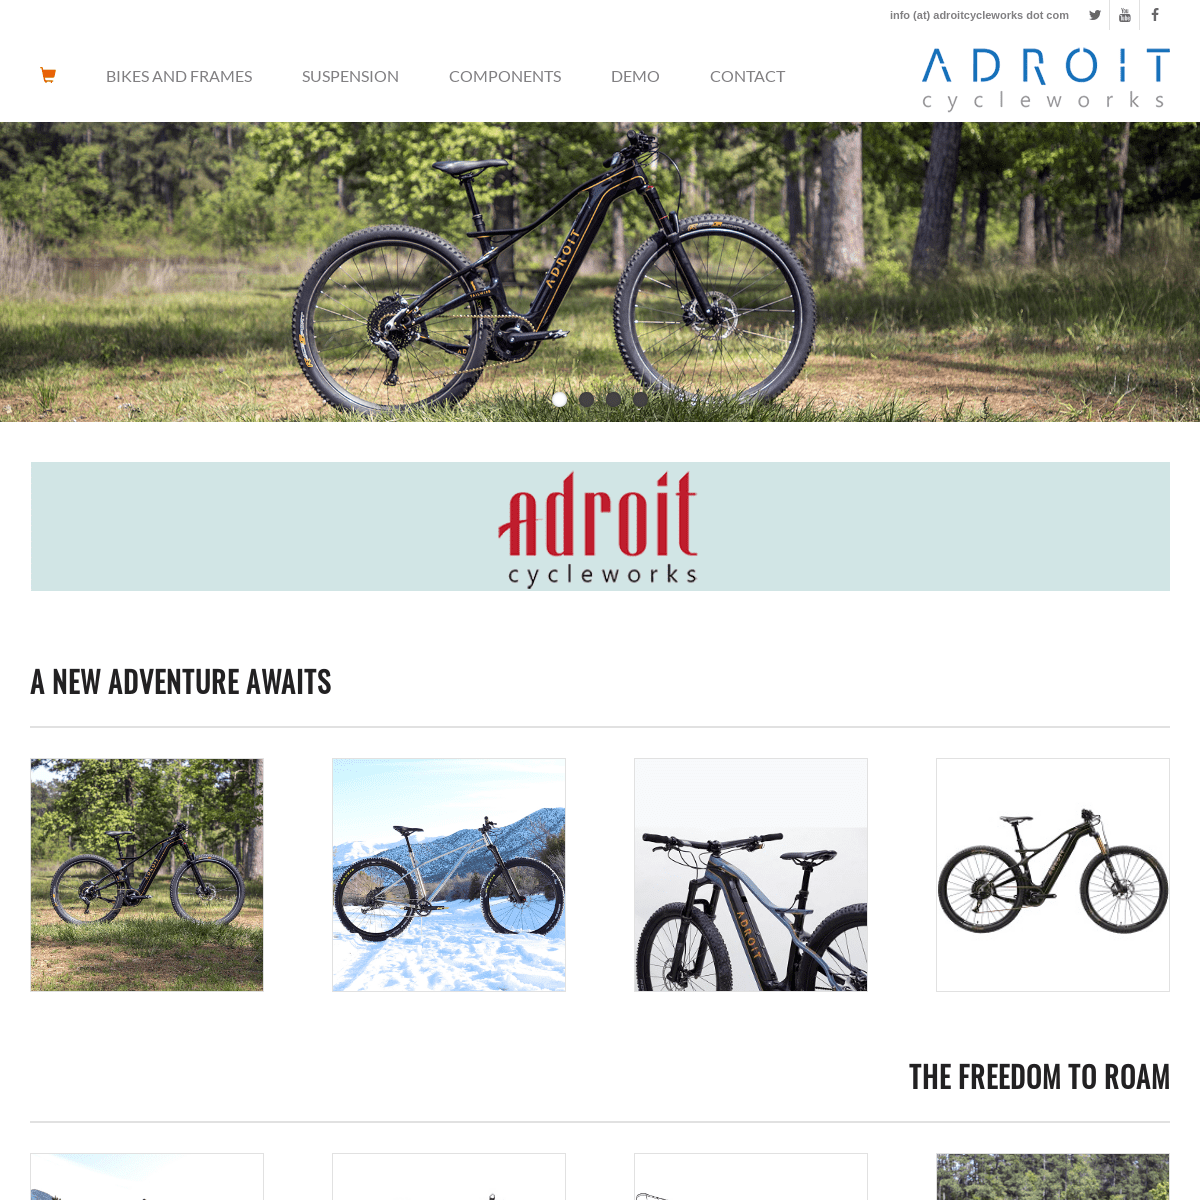 ArchiveBay.com - adroitcycleworks.com - ADROIT.bike - ADROIT Cycleworks